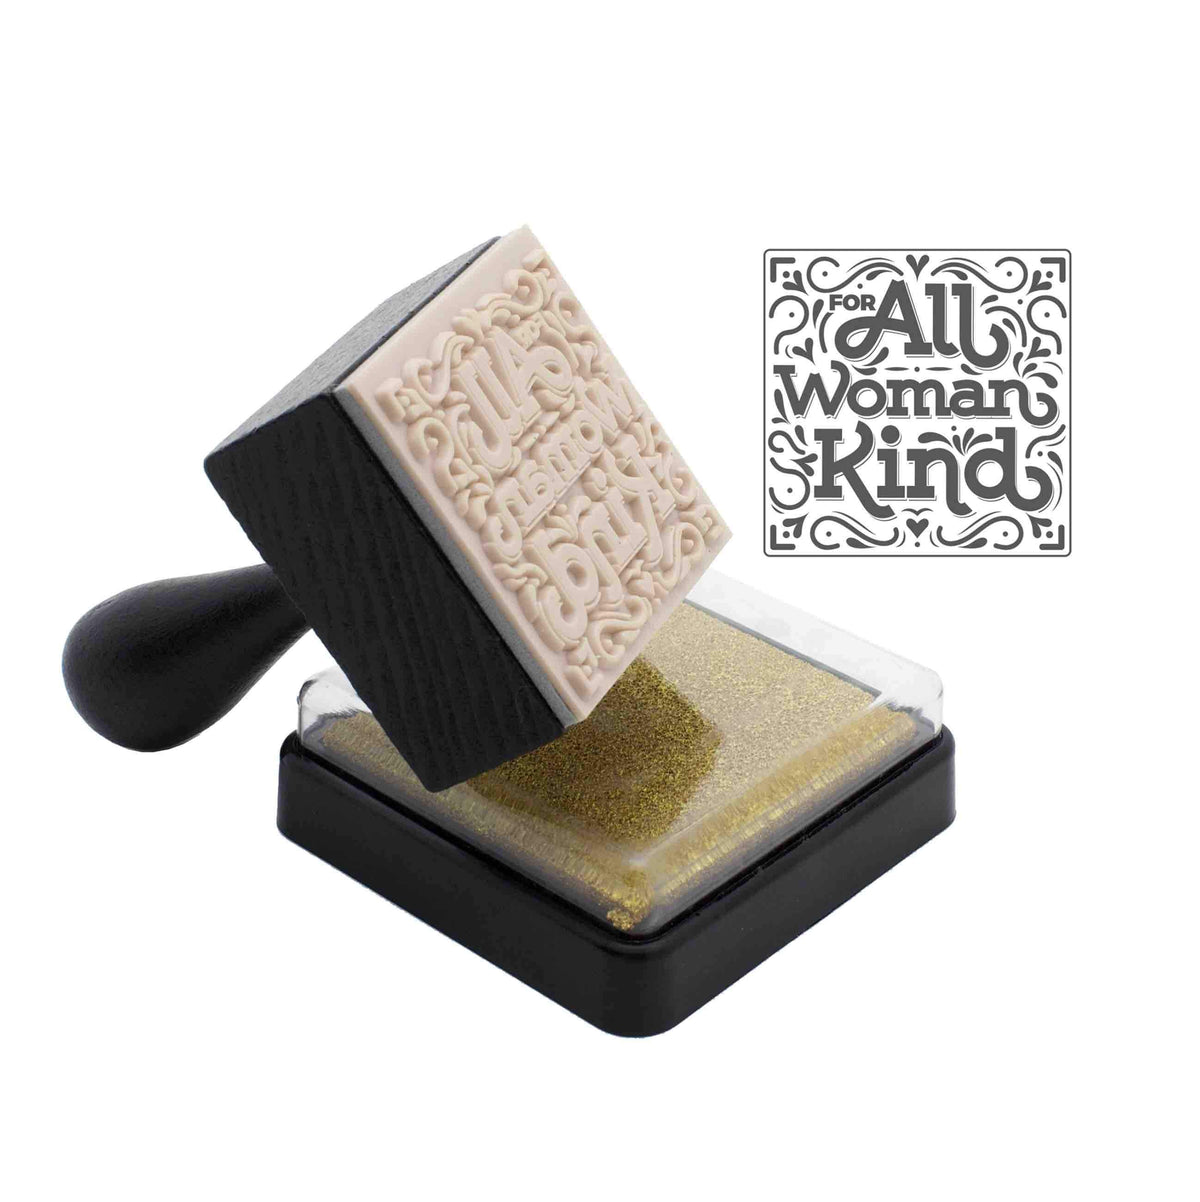 Boss Lady & For All Woman Kind Stamper Set